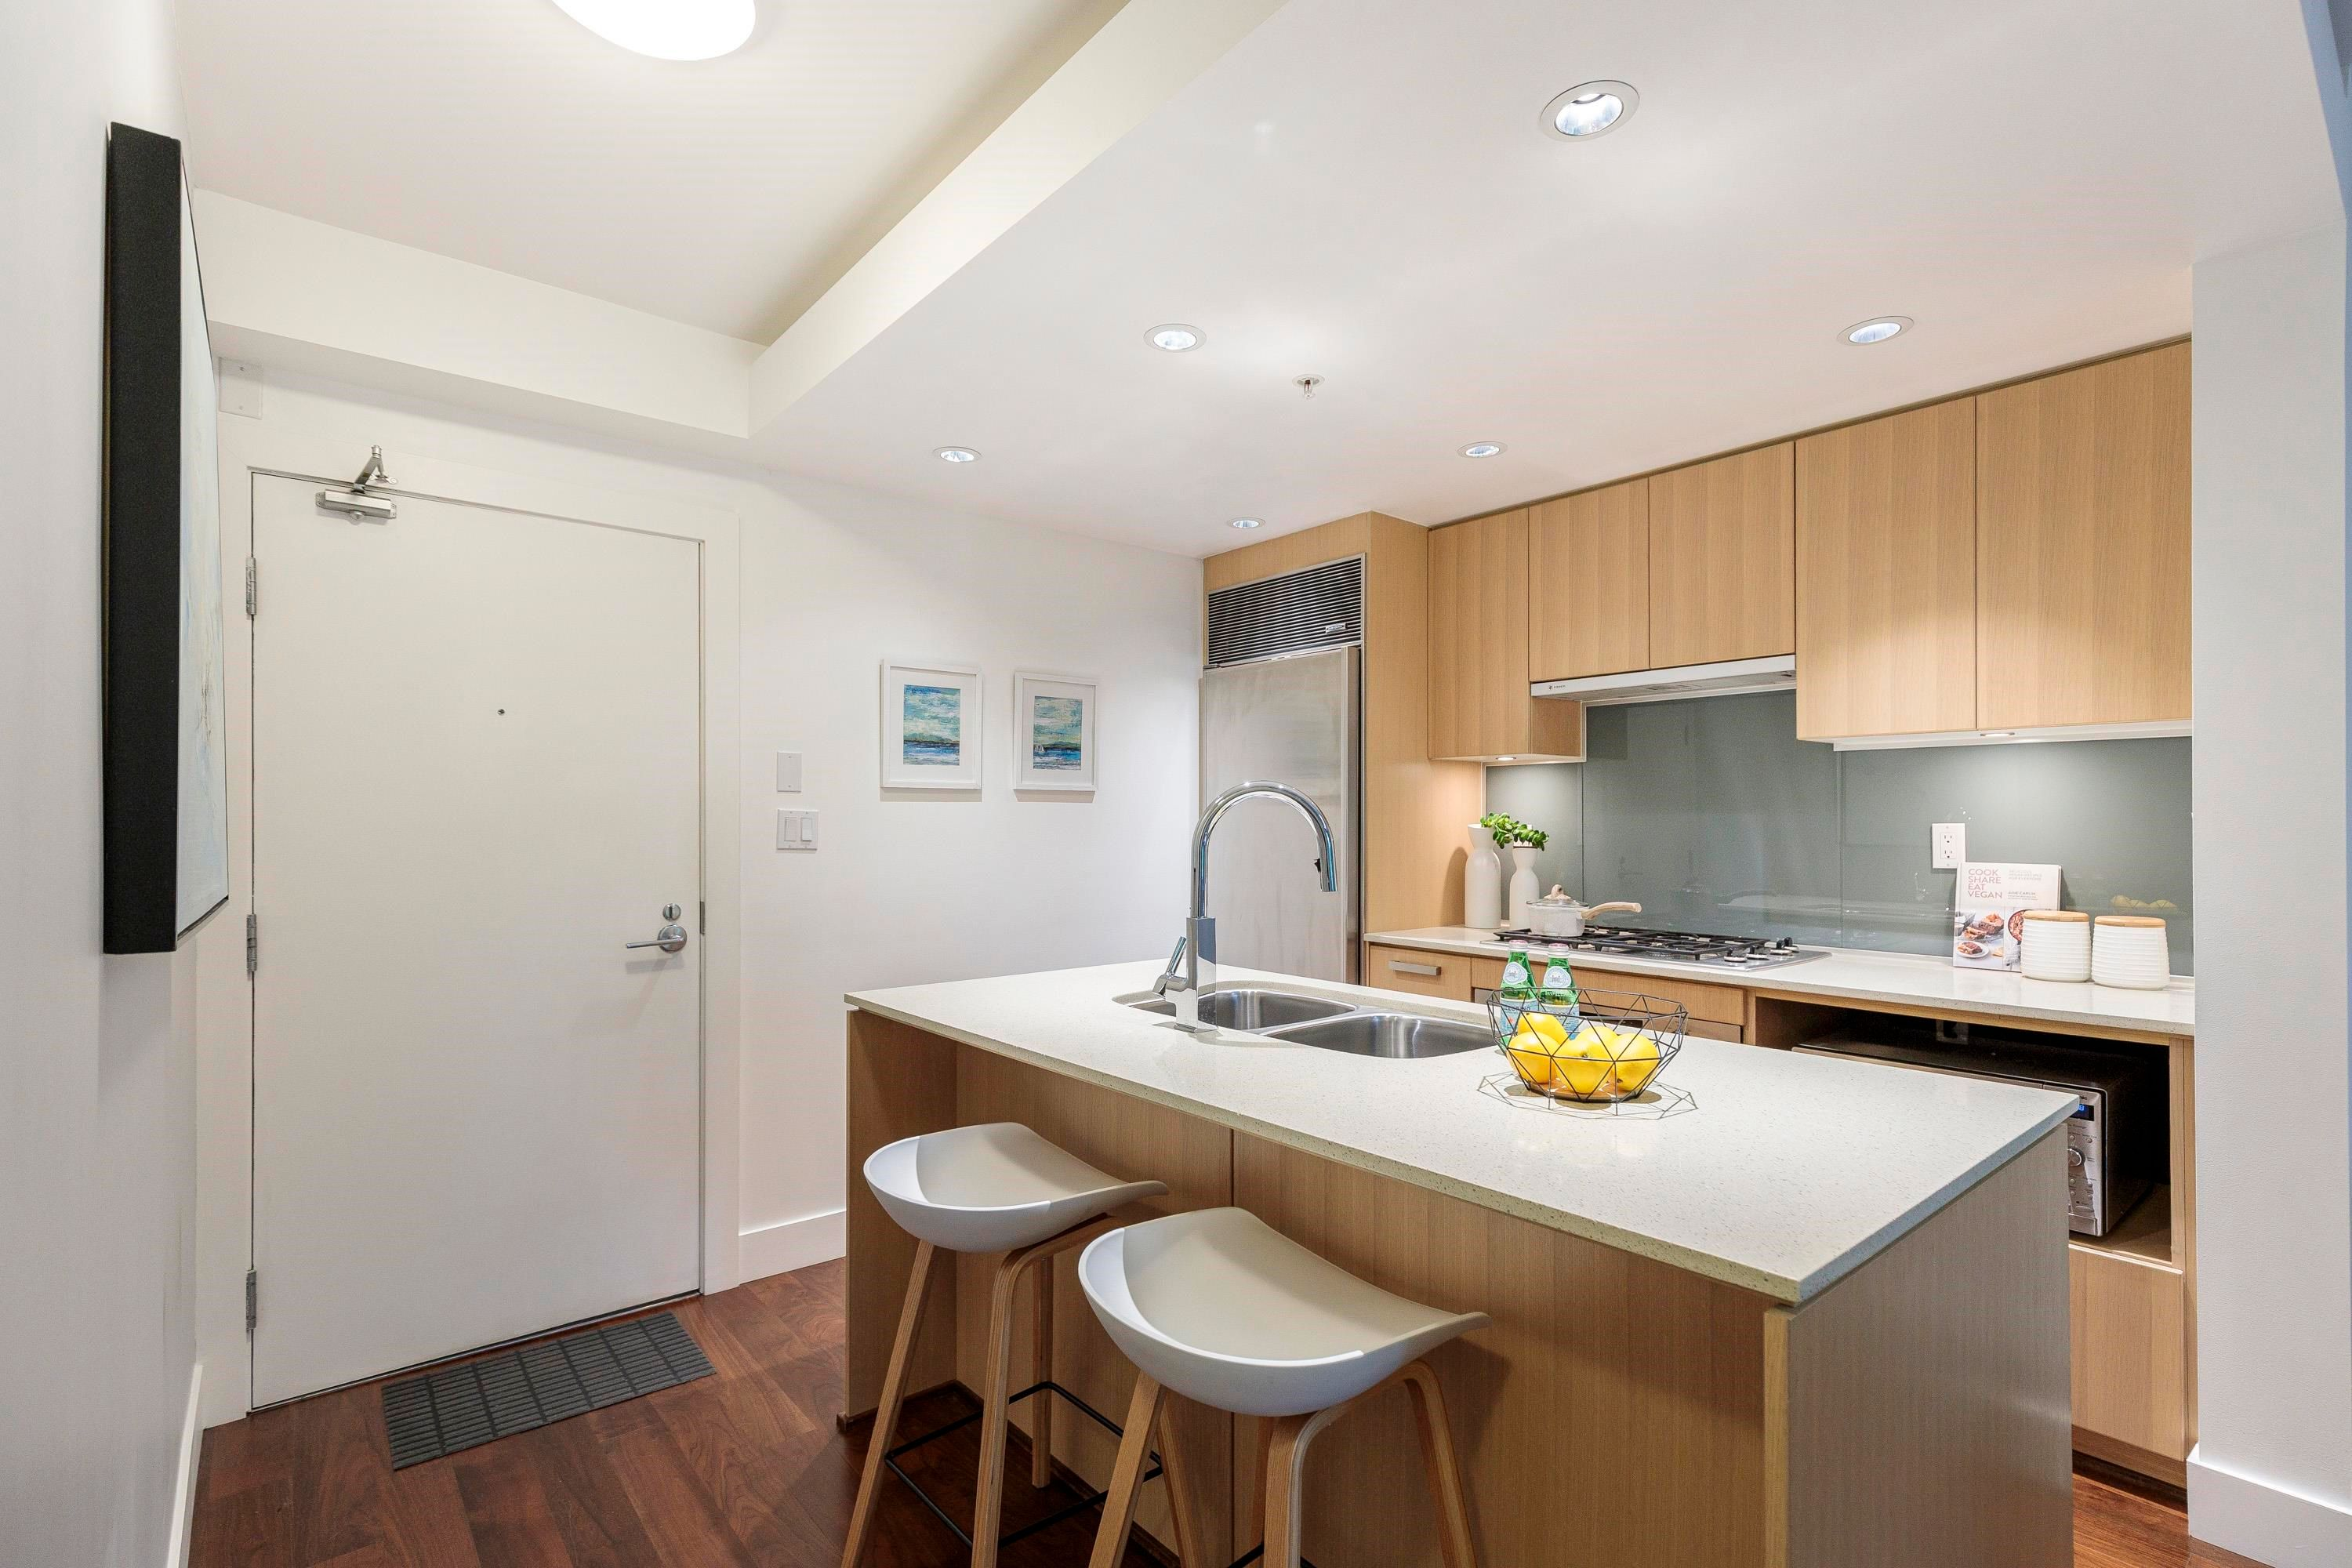 """Main Photo: 305 1675 W 8TH Avenue in Vancouver: Fairview VW Condo for sale in """"Camera"""" (Vancouver West)  : MLS®# R2617696"""